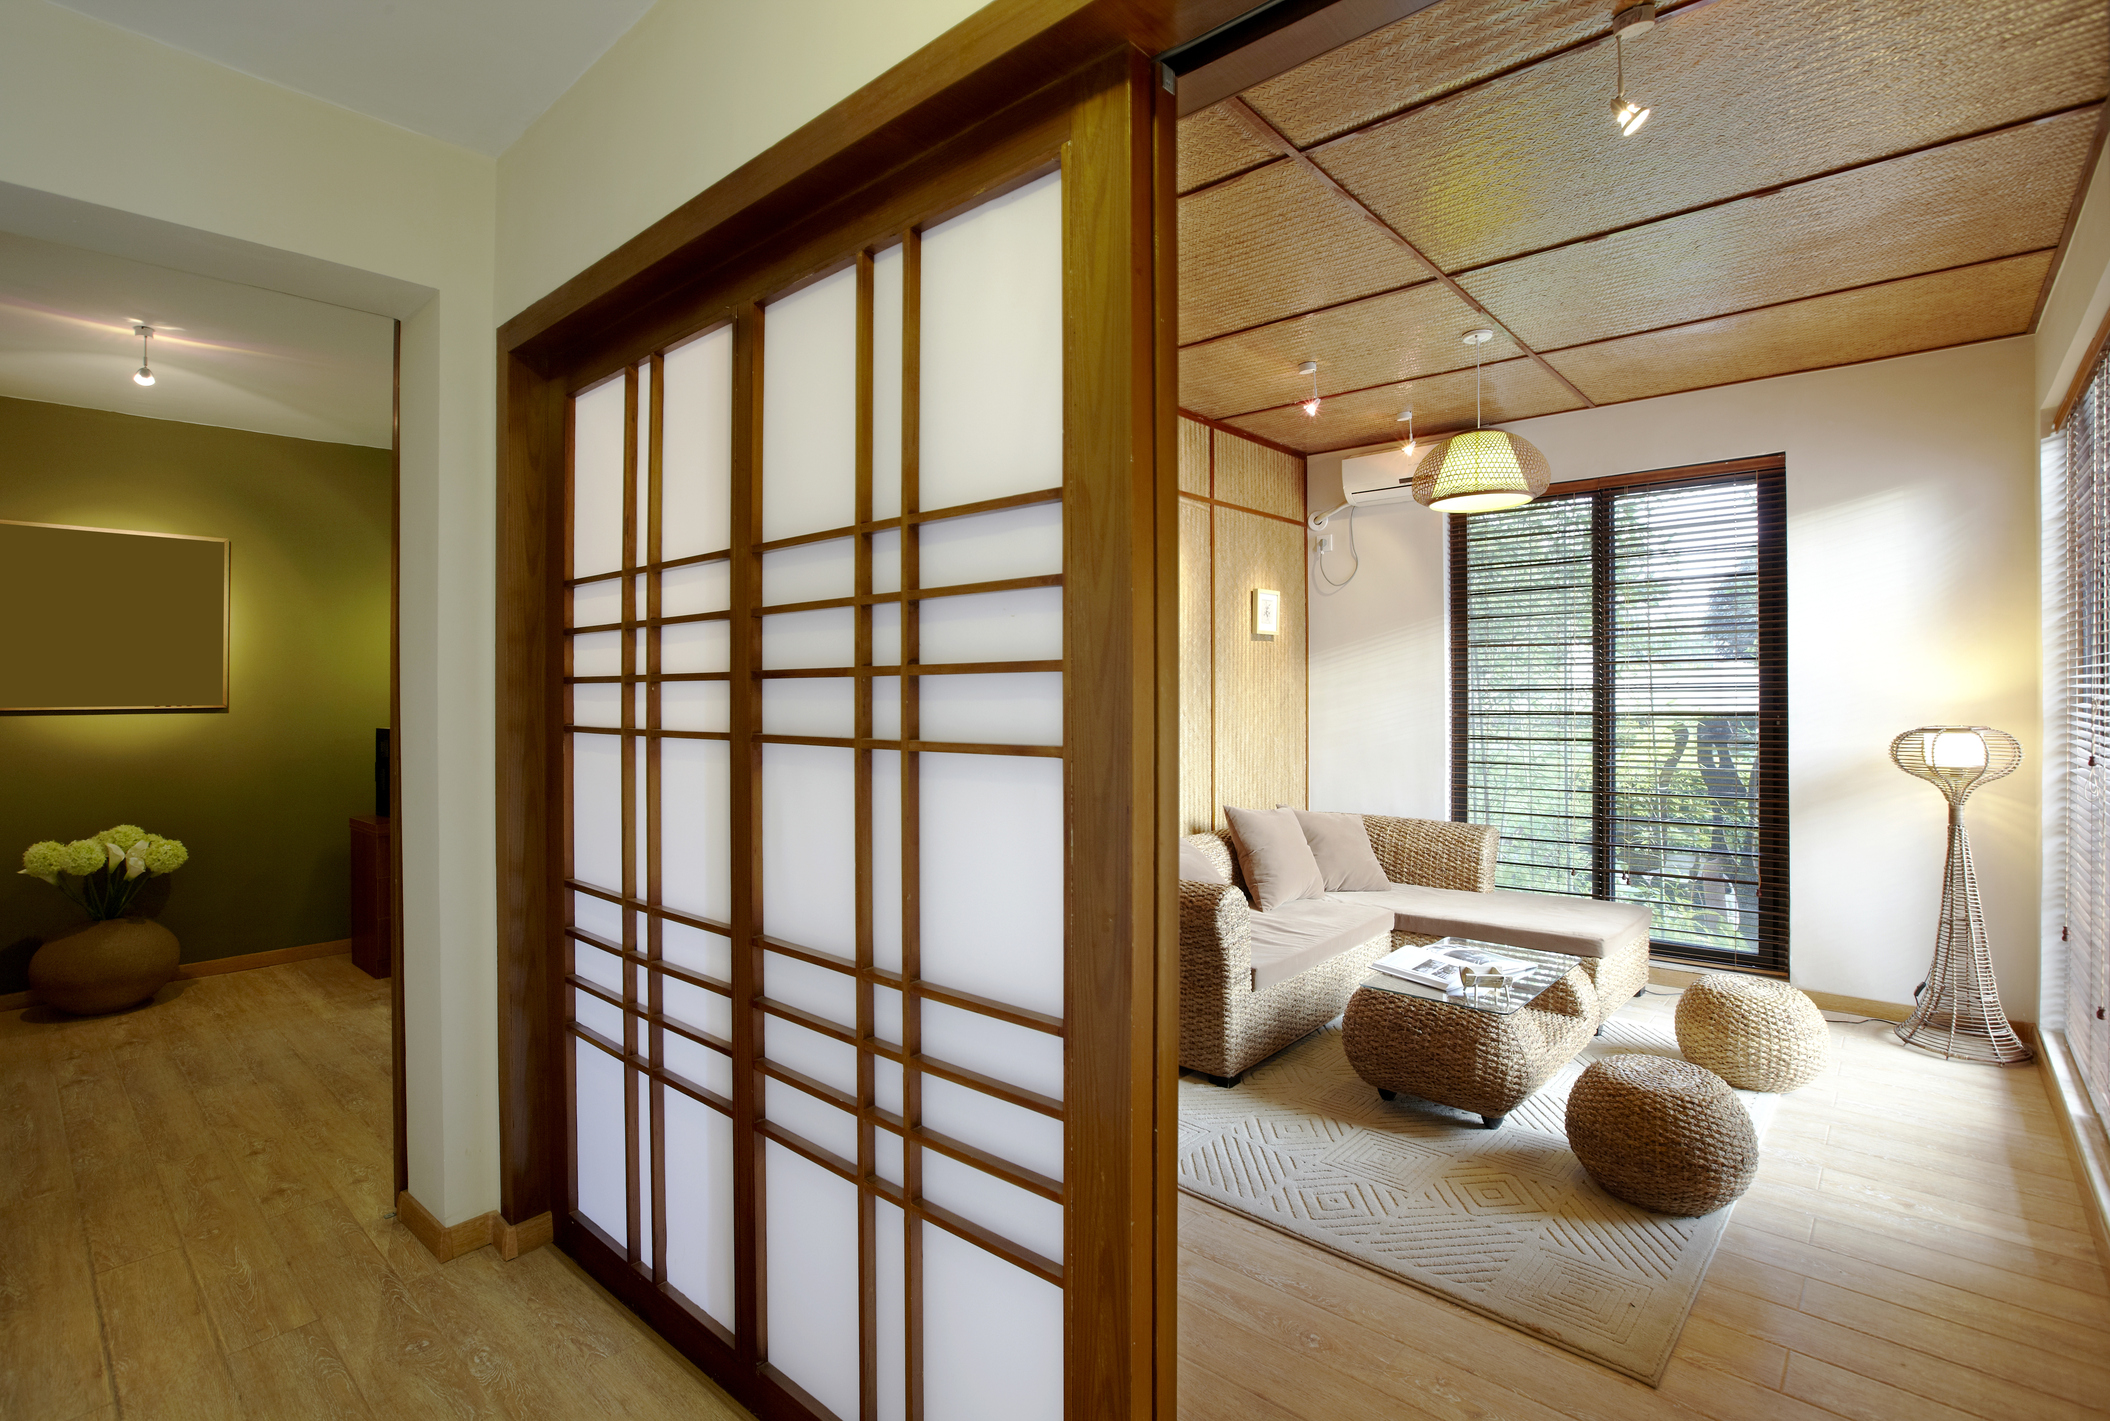 Beauteous 80 japanese style interior design design ideas for Asian minimalist interior design